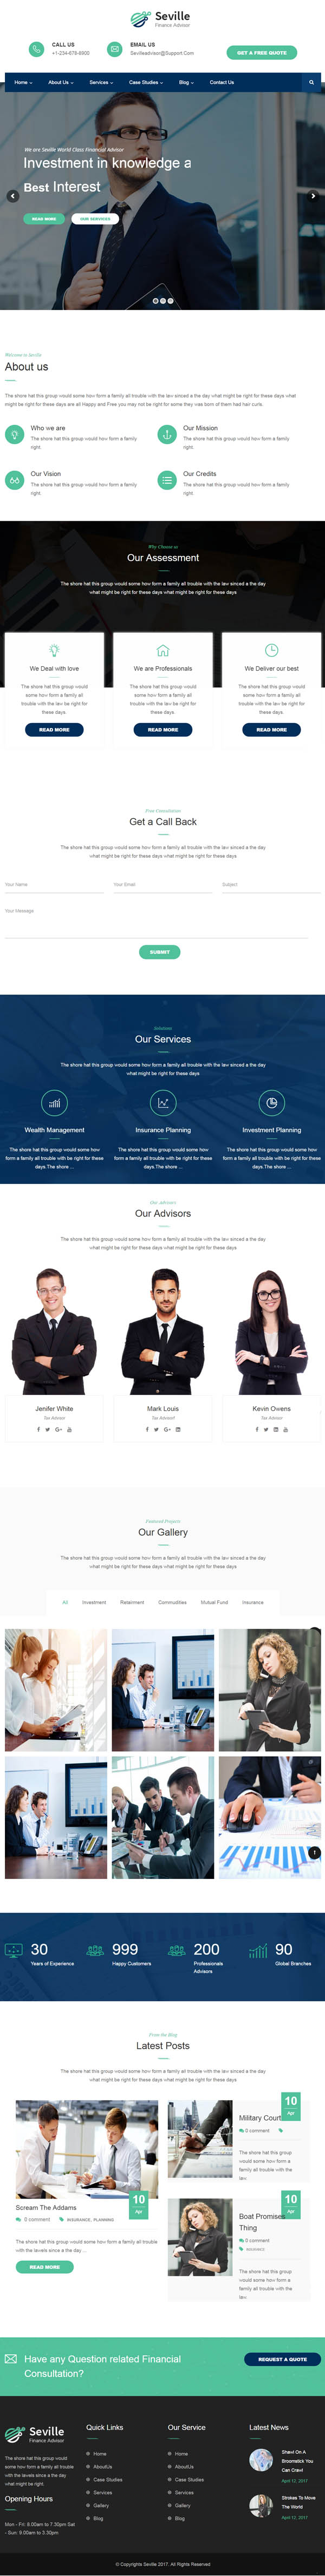 Seville -Business Consulting and Professional Services WordPress Theme